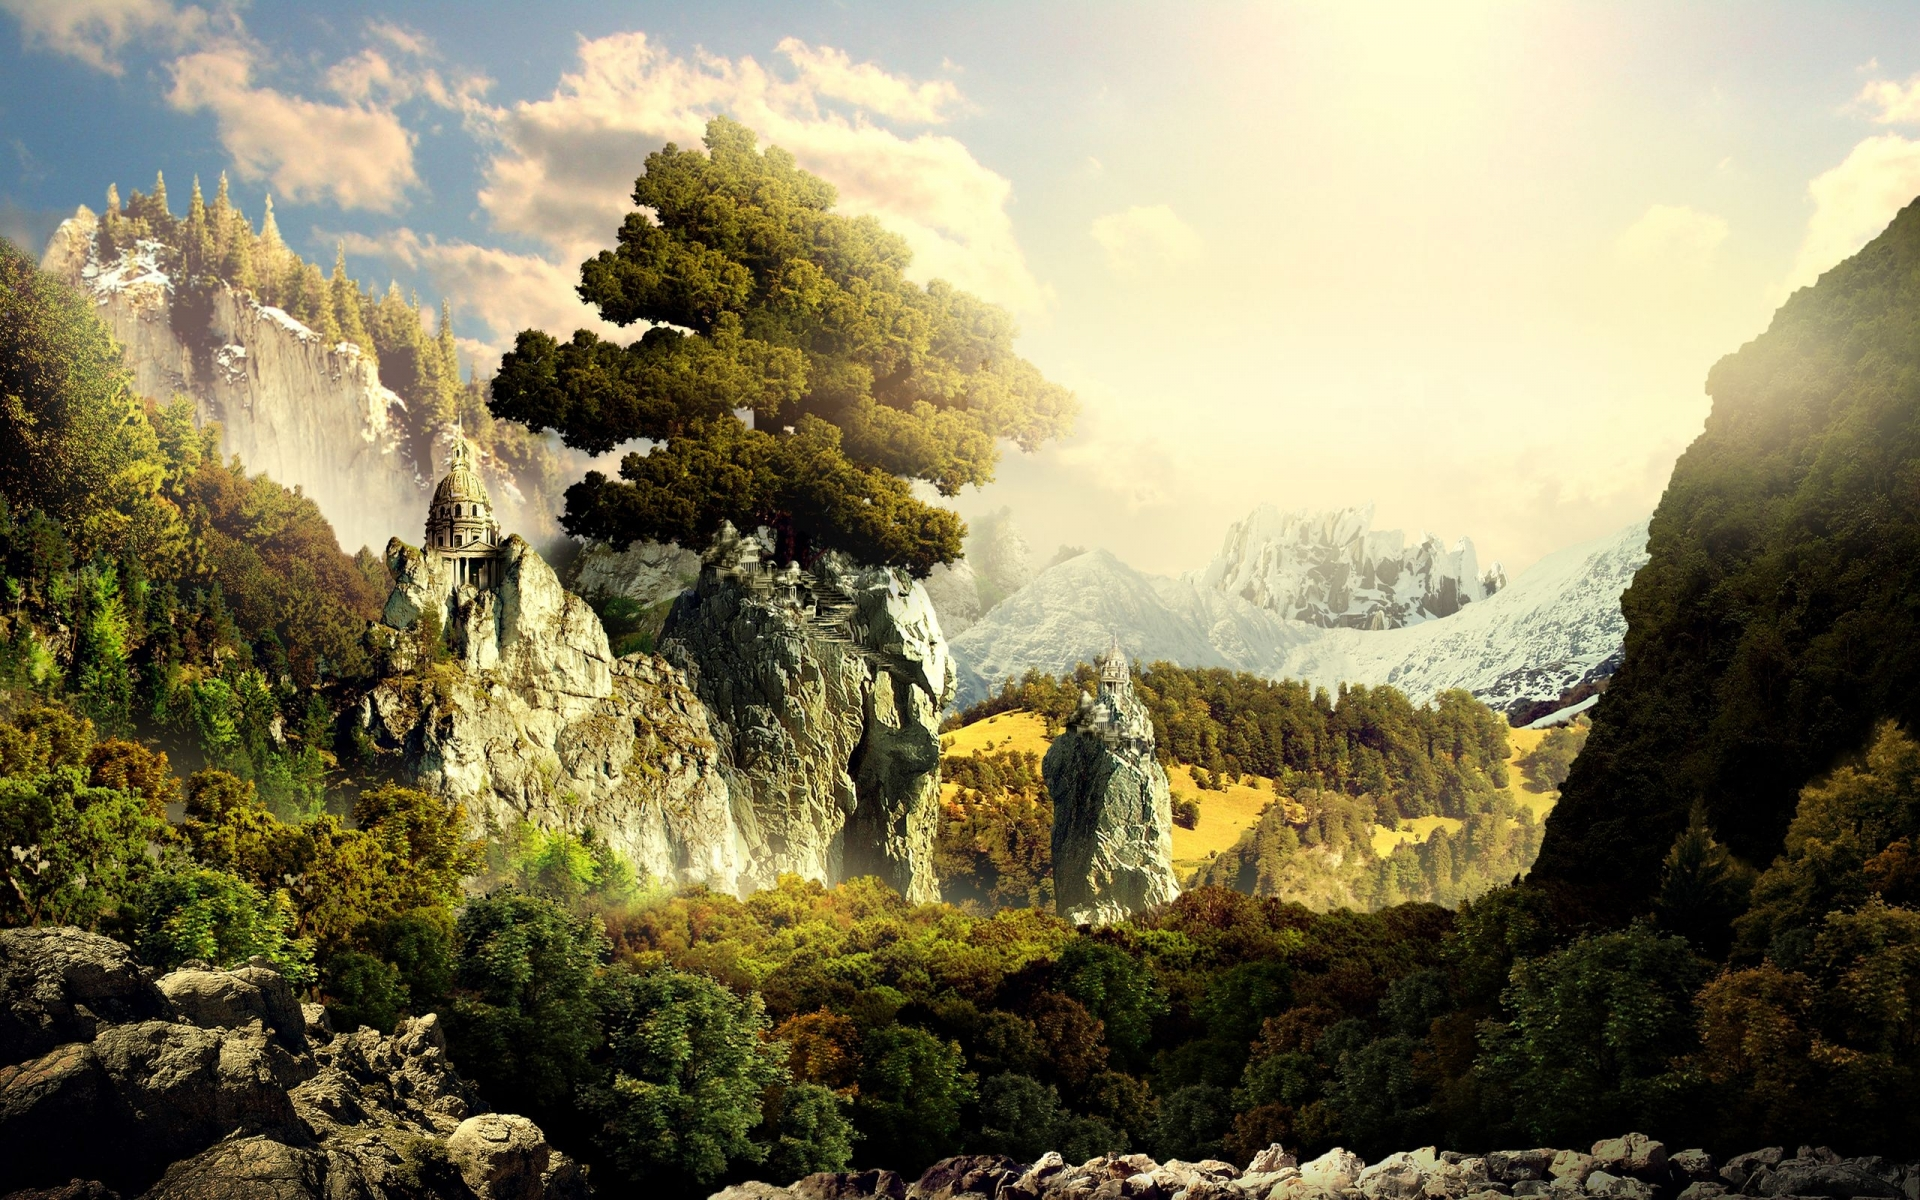 65 amazing high resolution 3d wallpapers for your desktop - 3d fantasy wallpaper ...